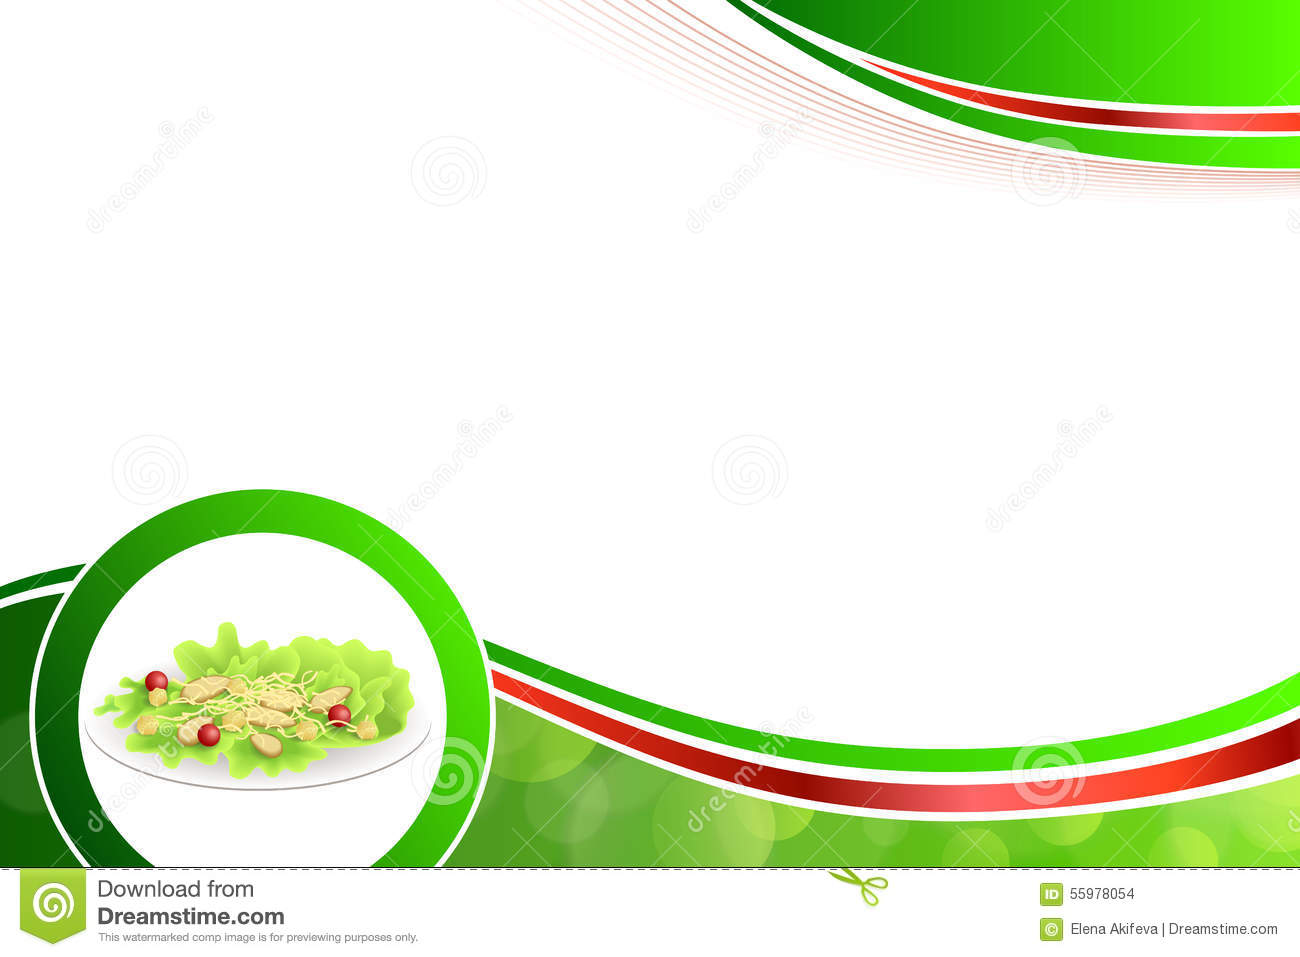 Abstract background food chicken Caesar salad tomato crackers green red yellow illustration